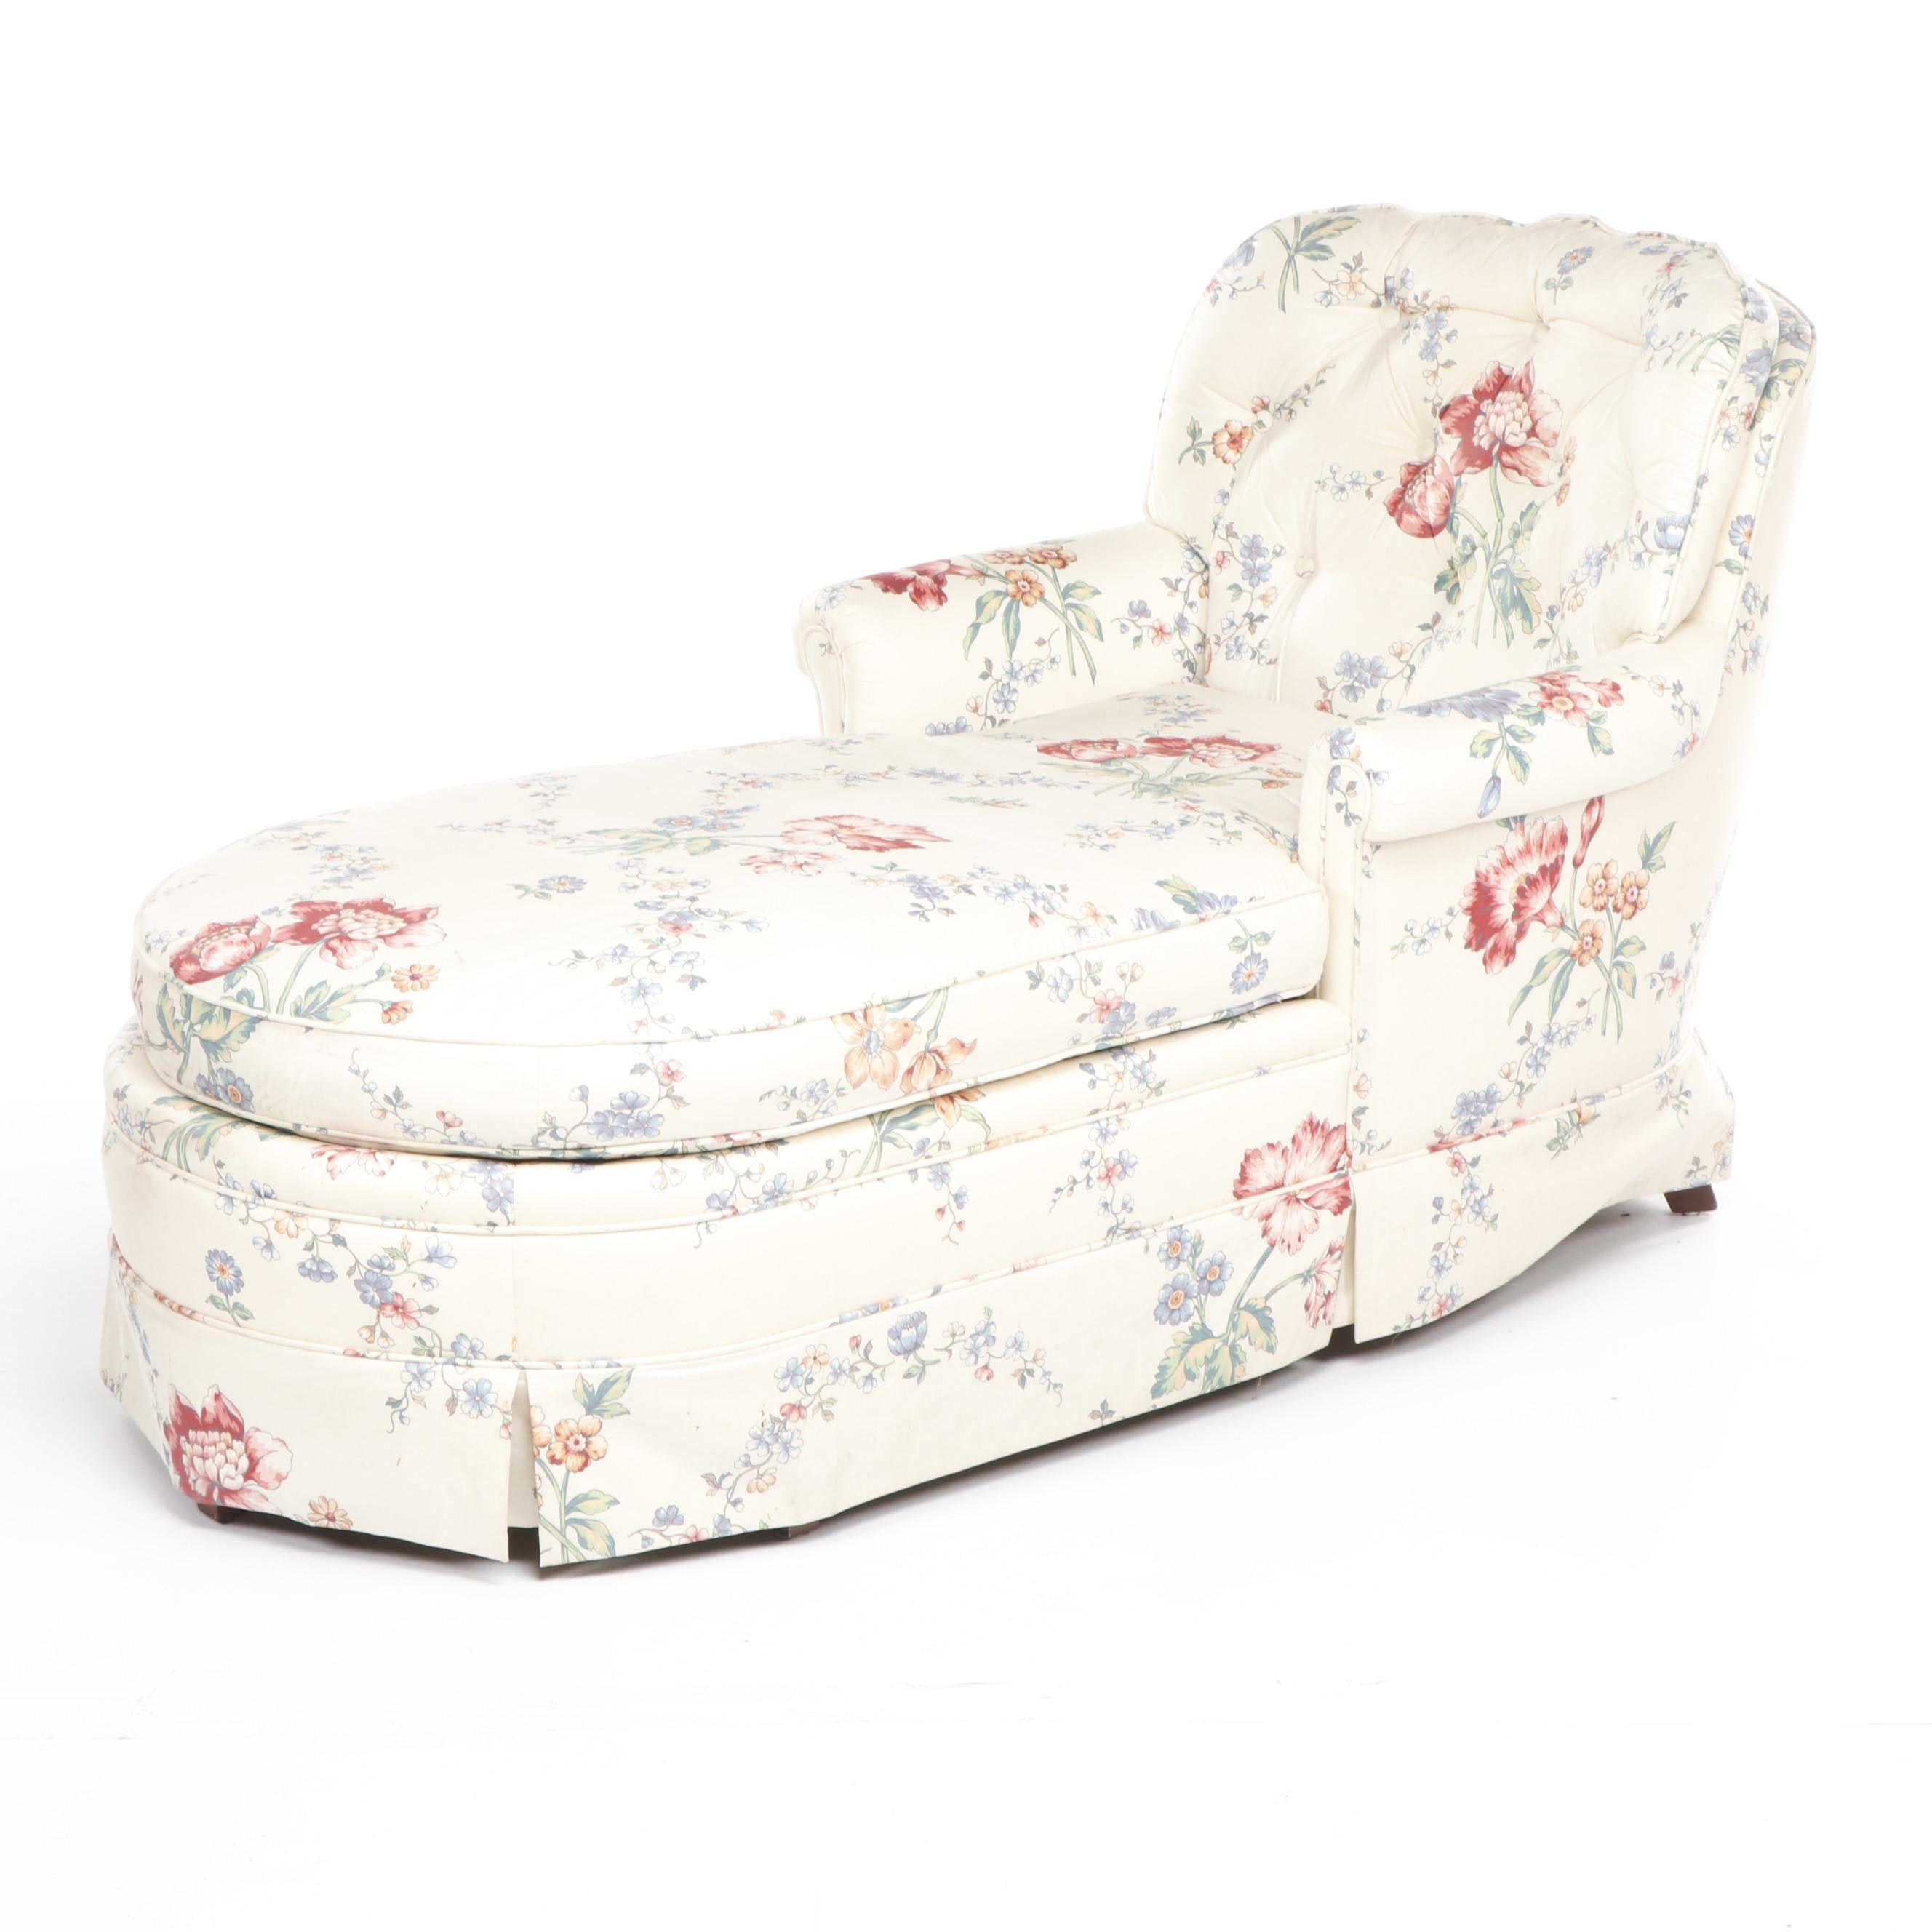 Floral Upholstered Button-Tufted Chaise Lounge, Late 20th Century